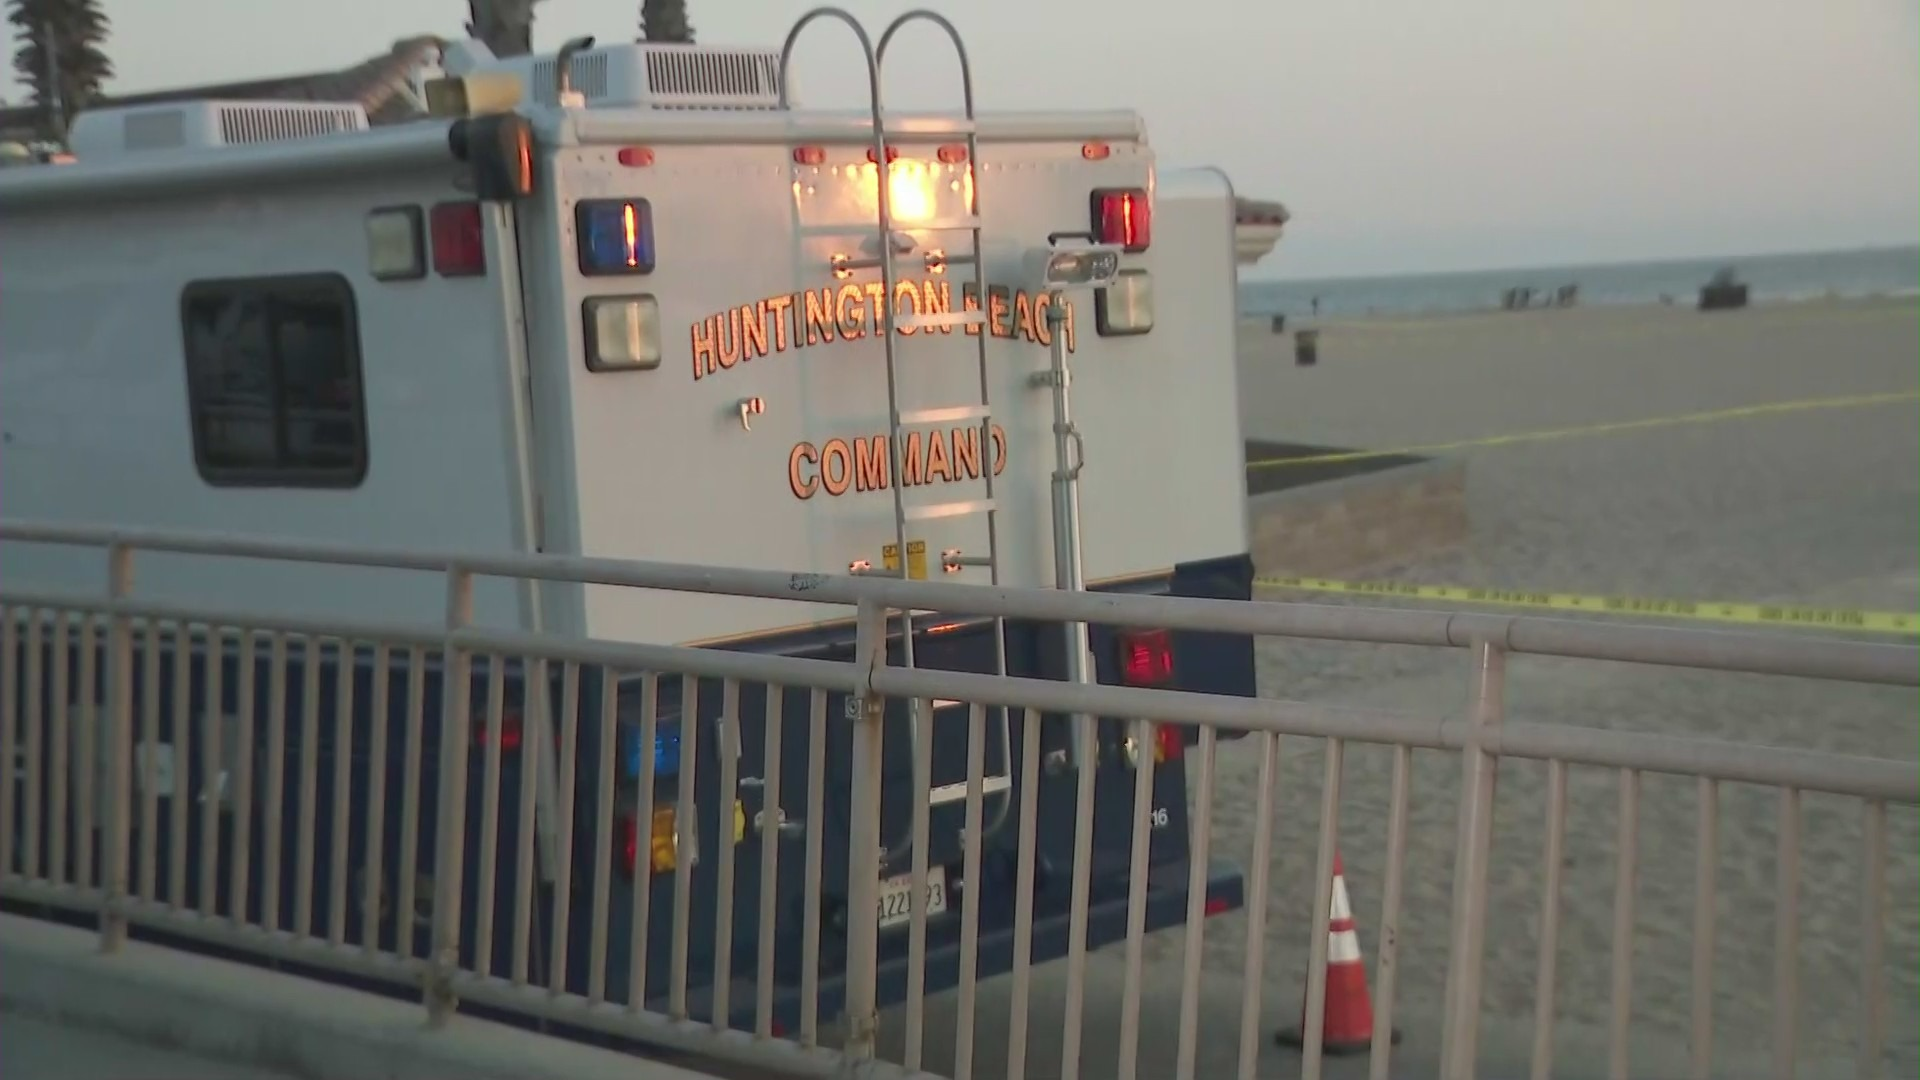 A person was shot in an officer-involved shooting in Huntington Beach on Sept. 25, 2021. (KTLA)